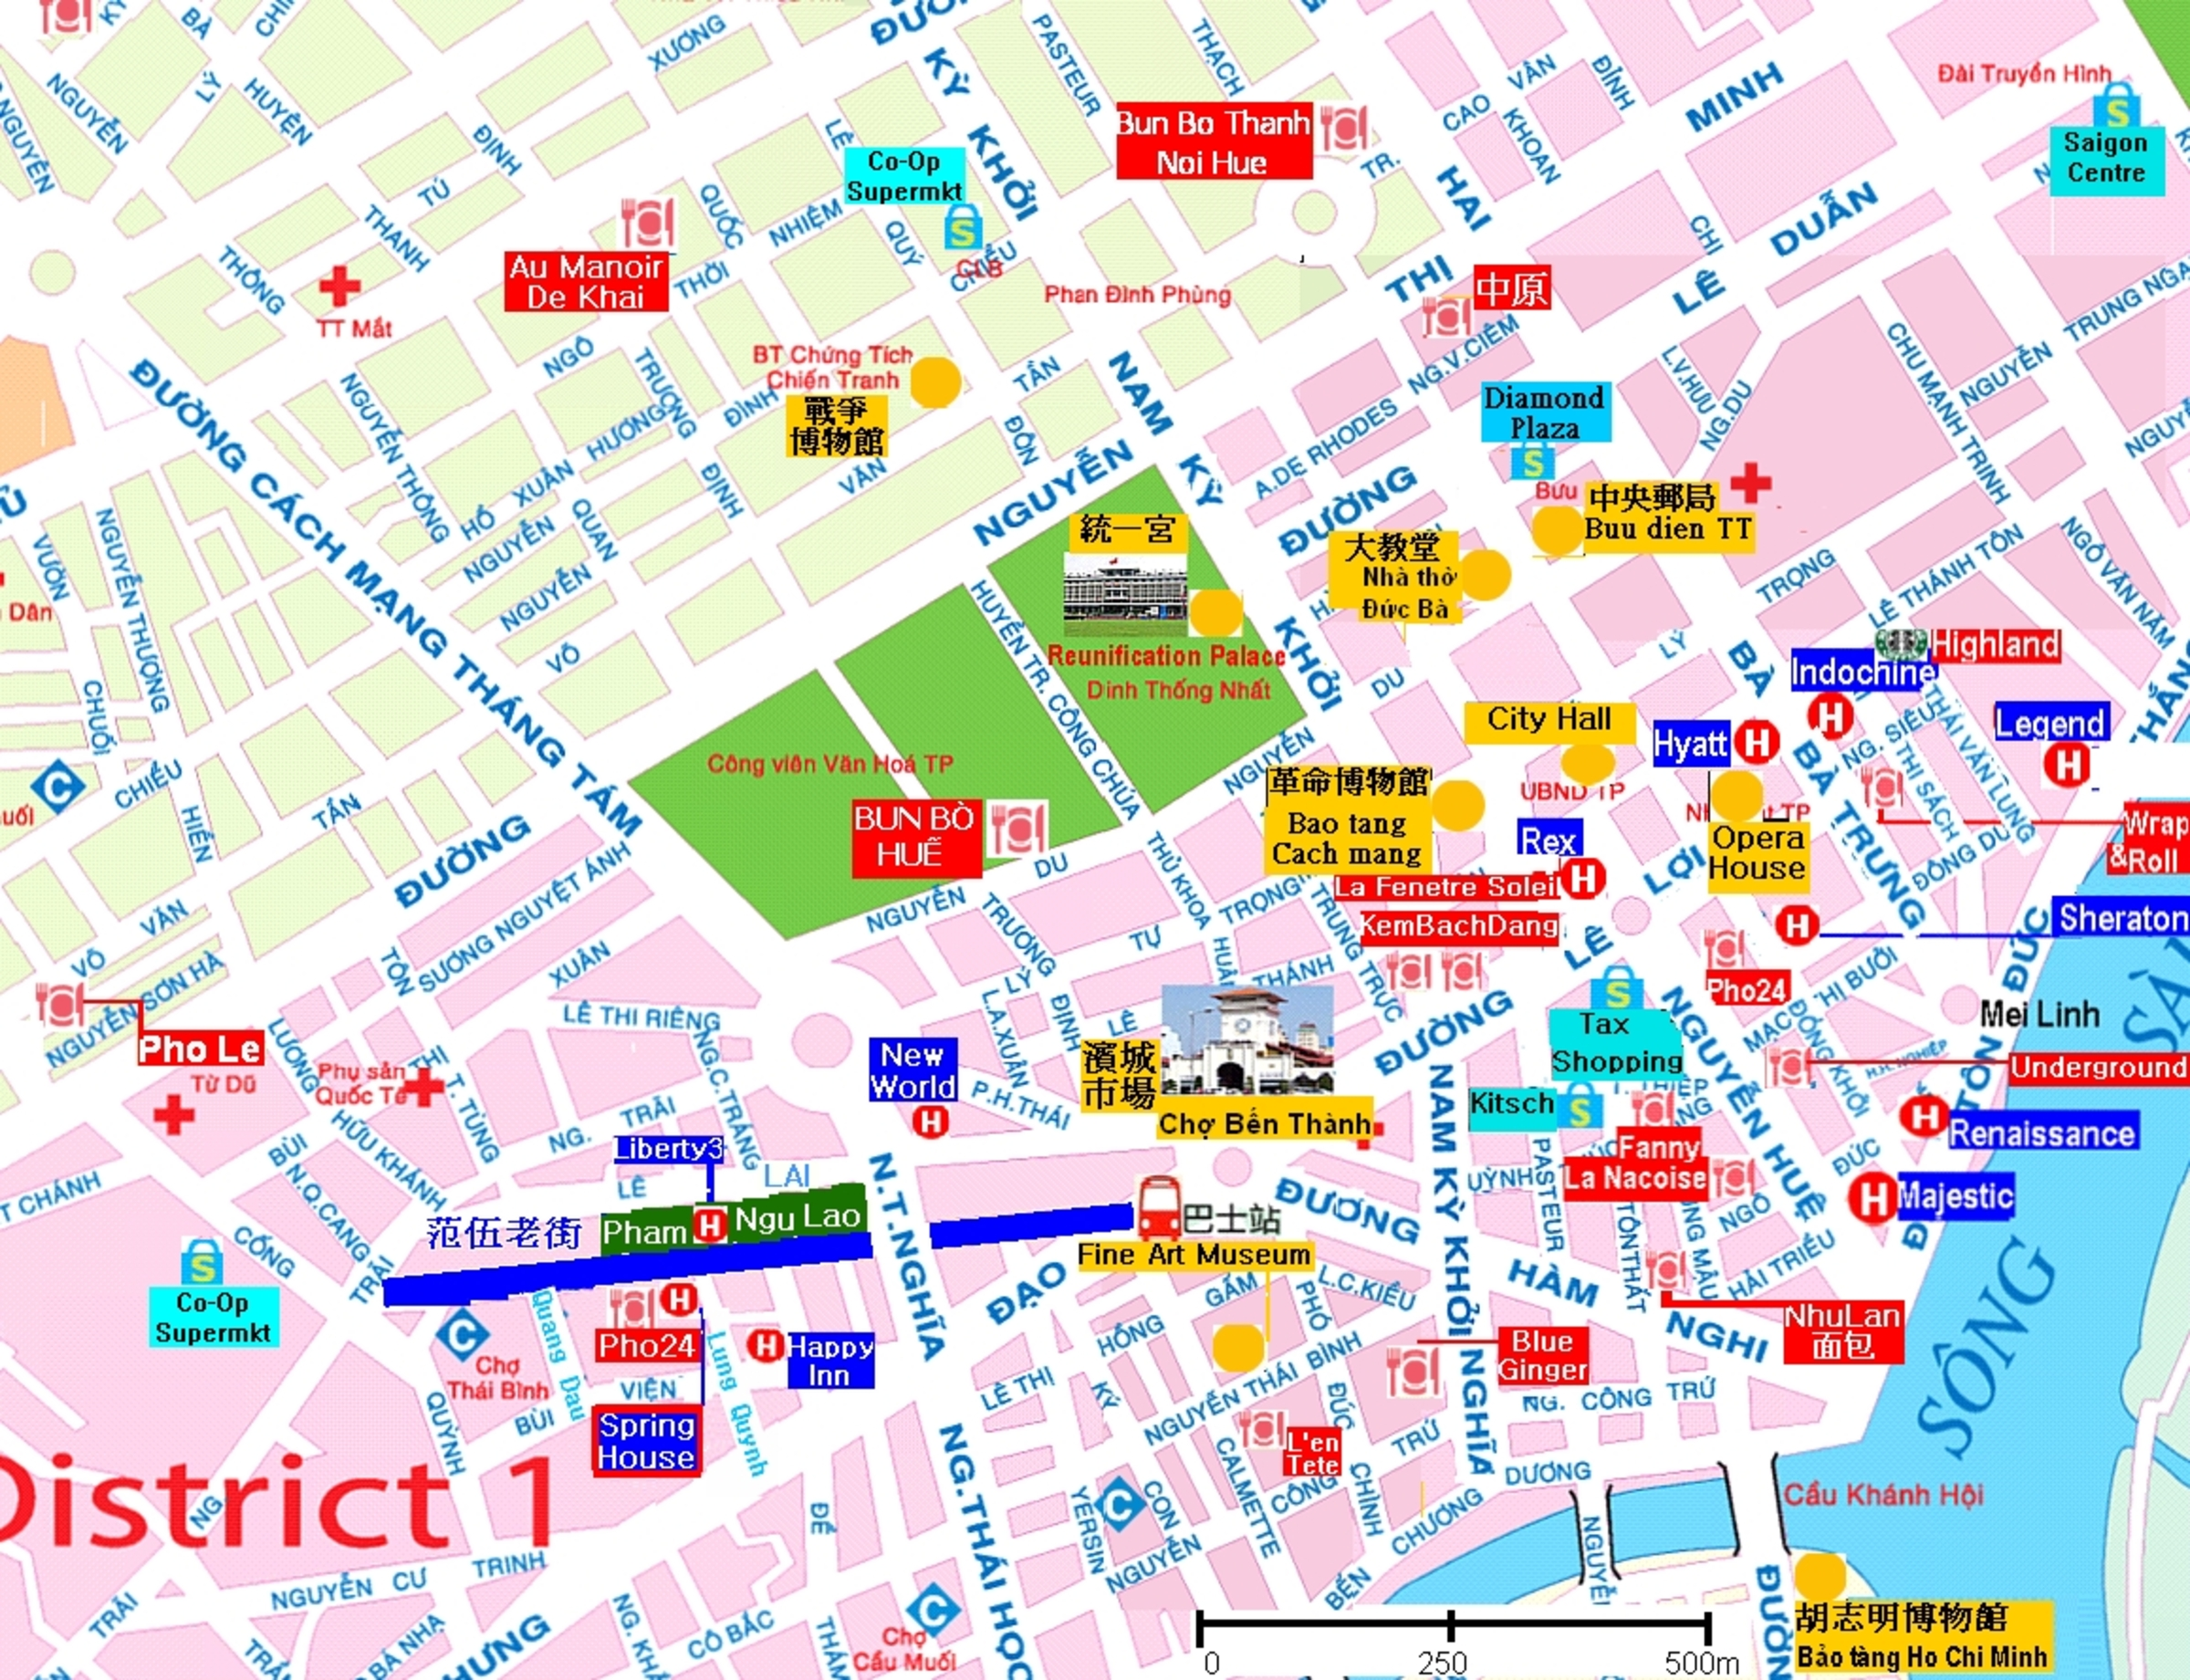 Ho Chi Minh City Tourist map District 1 Virtual Saigon